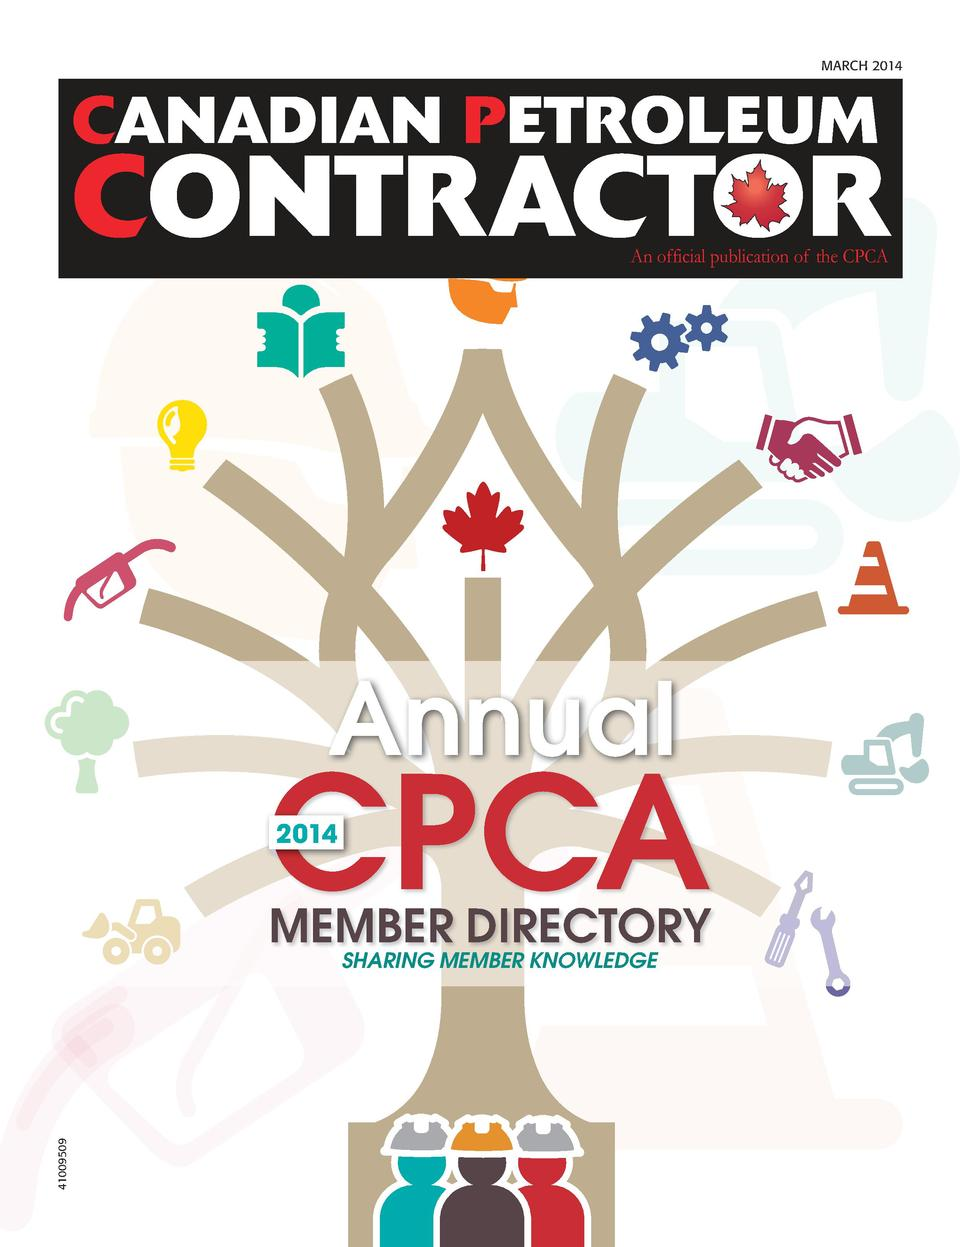 CONTRACTOR An official publication of the CPCA  MARCH 2014  CANADIAN PETROLEUM  CONTRACTOR An official publication of the ...